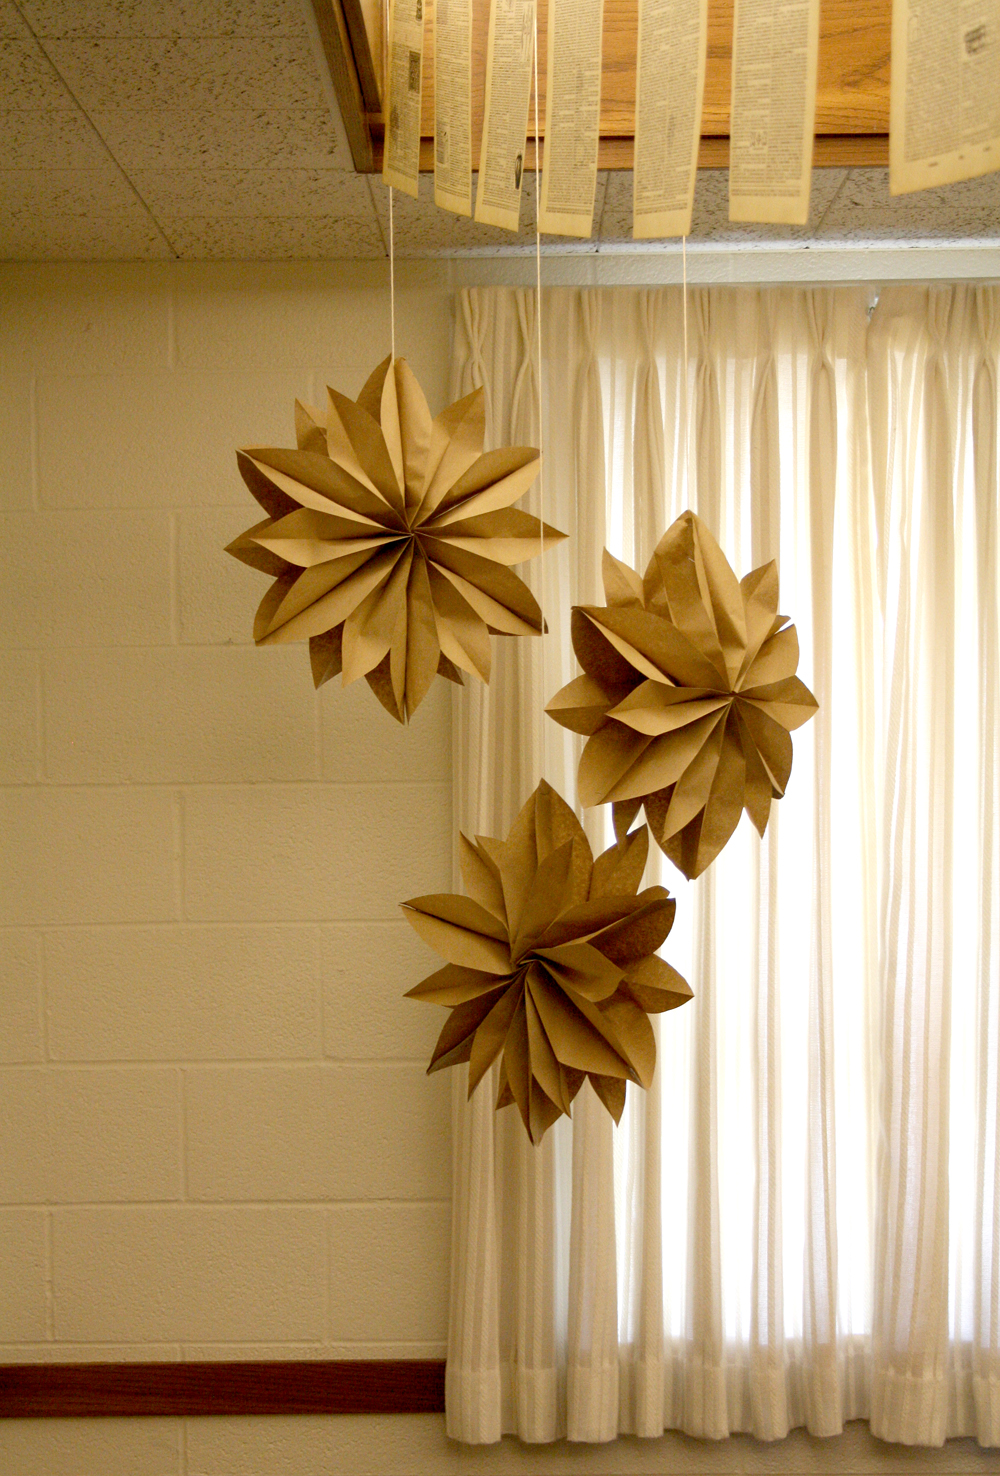 Ideas for homemade paper christmas decorations - Diy Hanging Paper Christmas Decorations Sunday September 11 2011